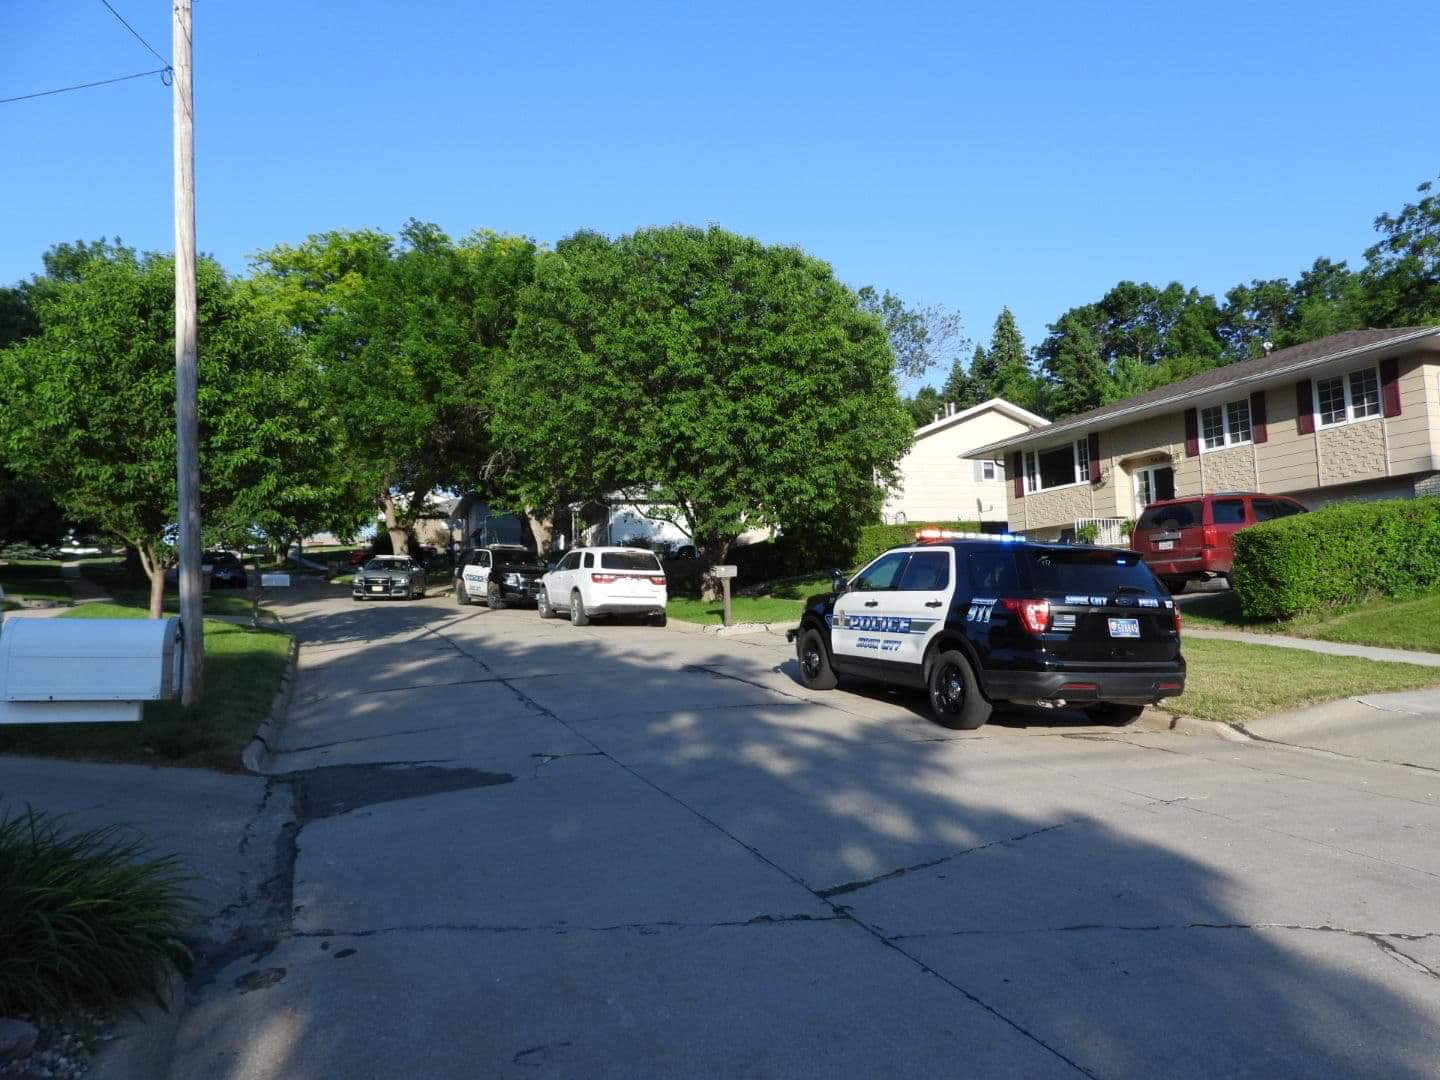 Female Charged With Attempted Murder After Shooting Family Member in Morningside Home